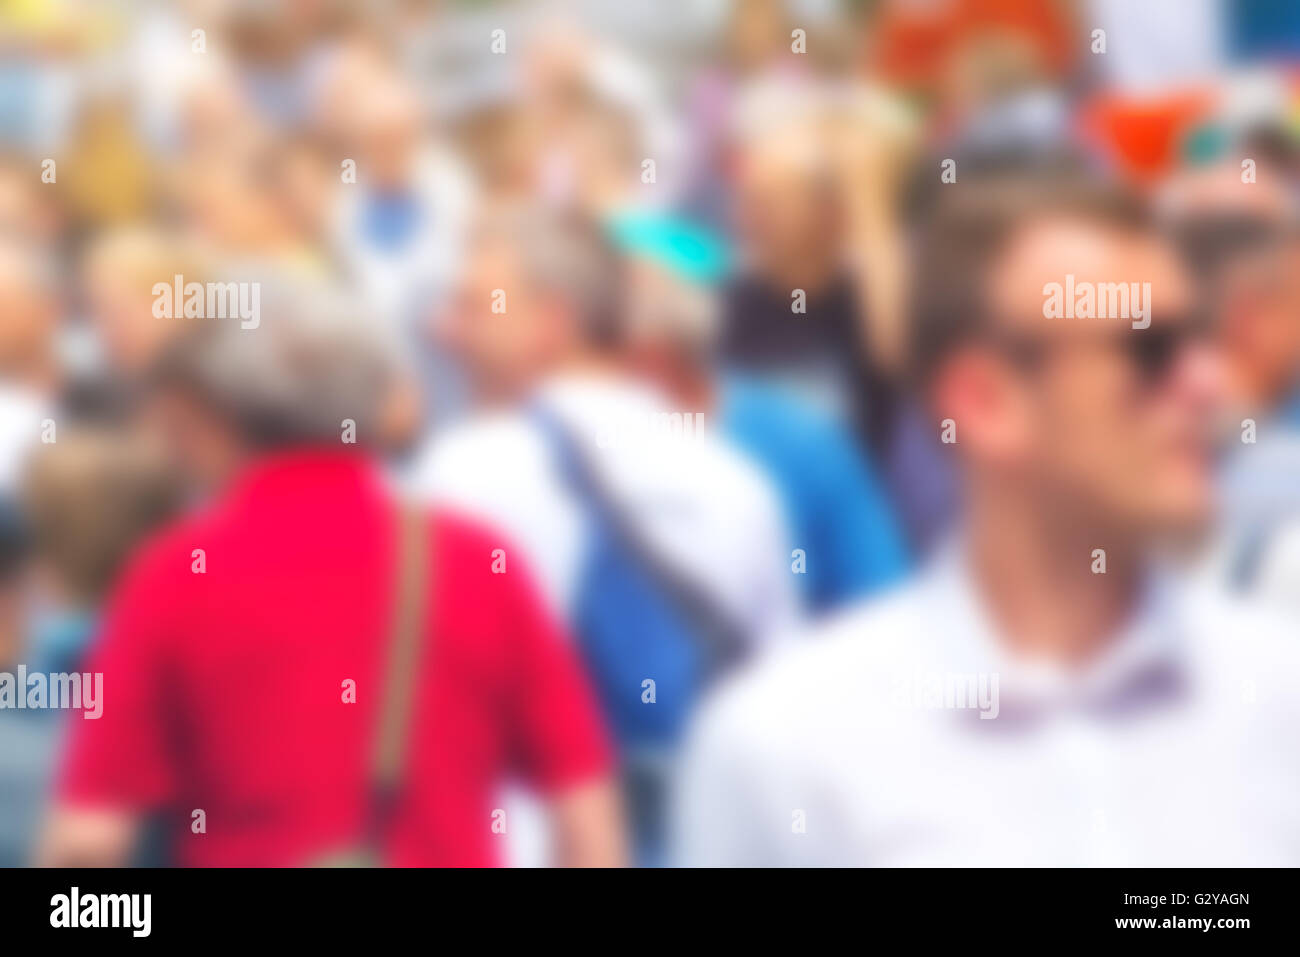 Crowded street as blur background, unrecognizable everyday ordinary people commuting - Stock Image